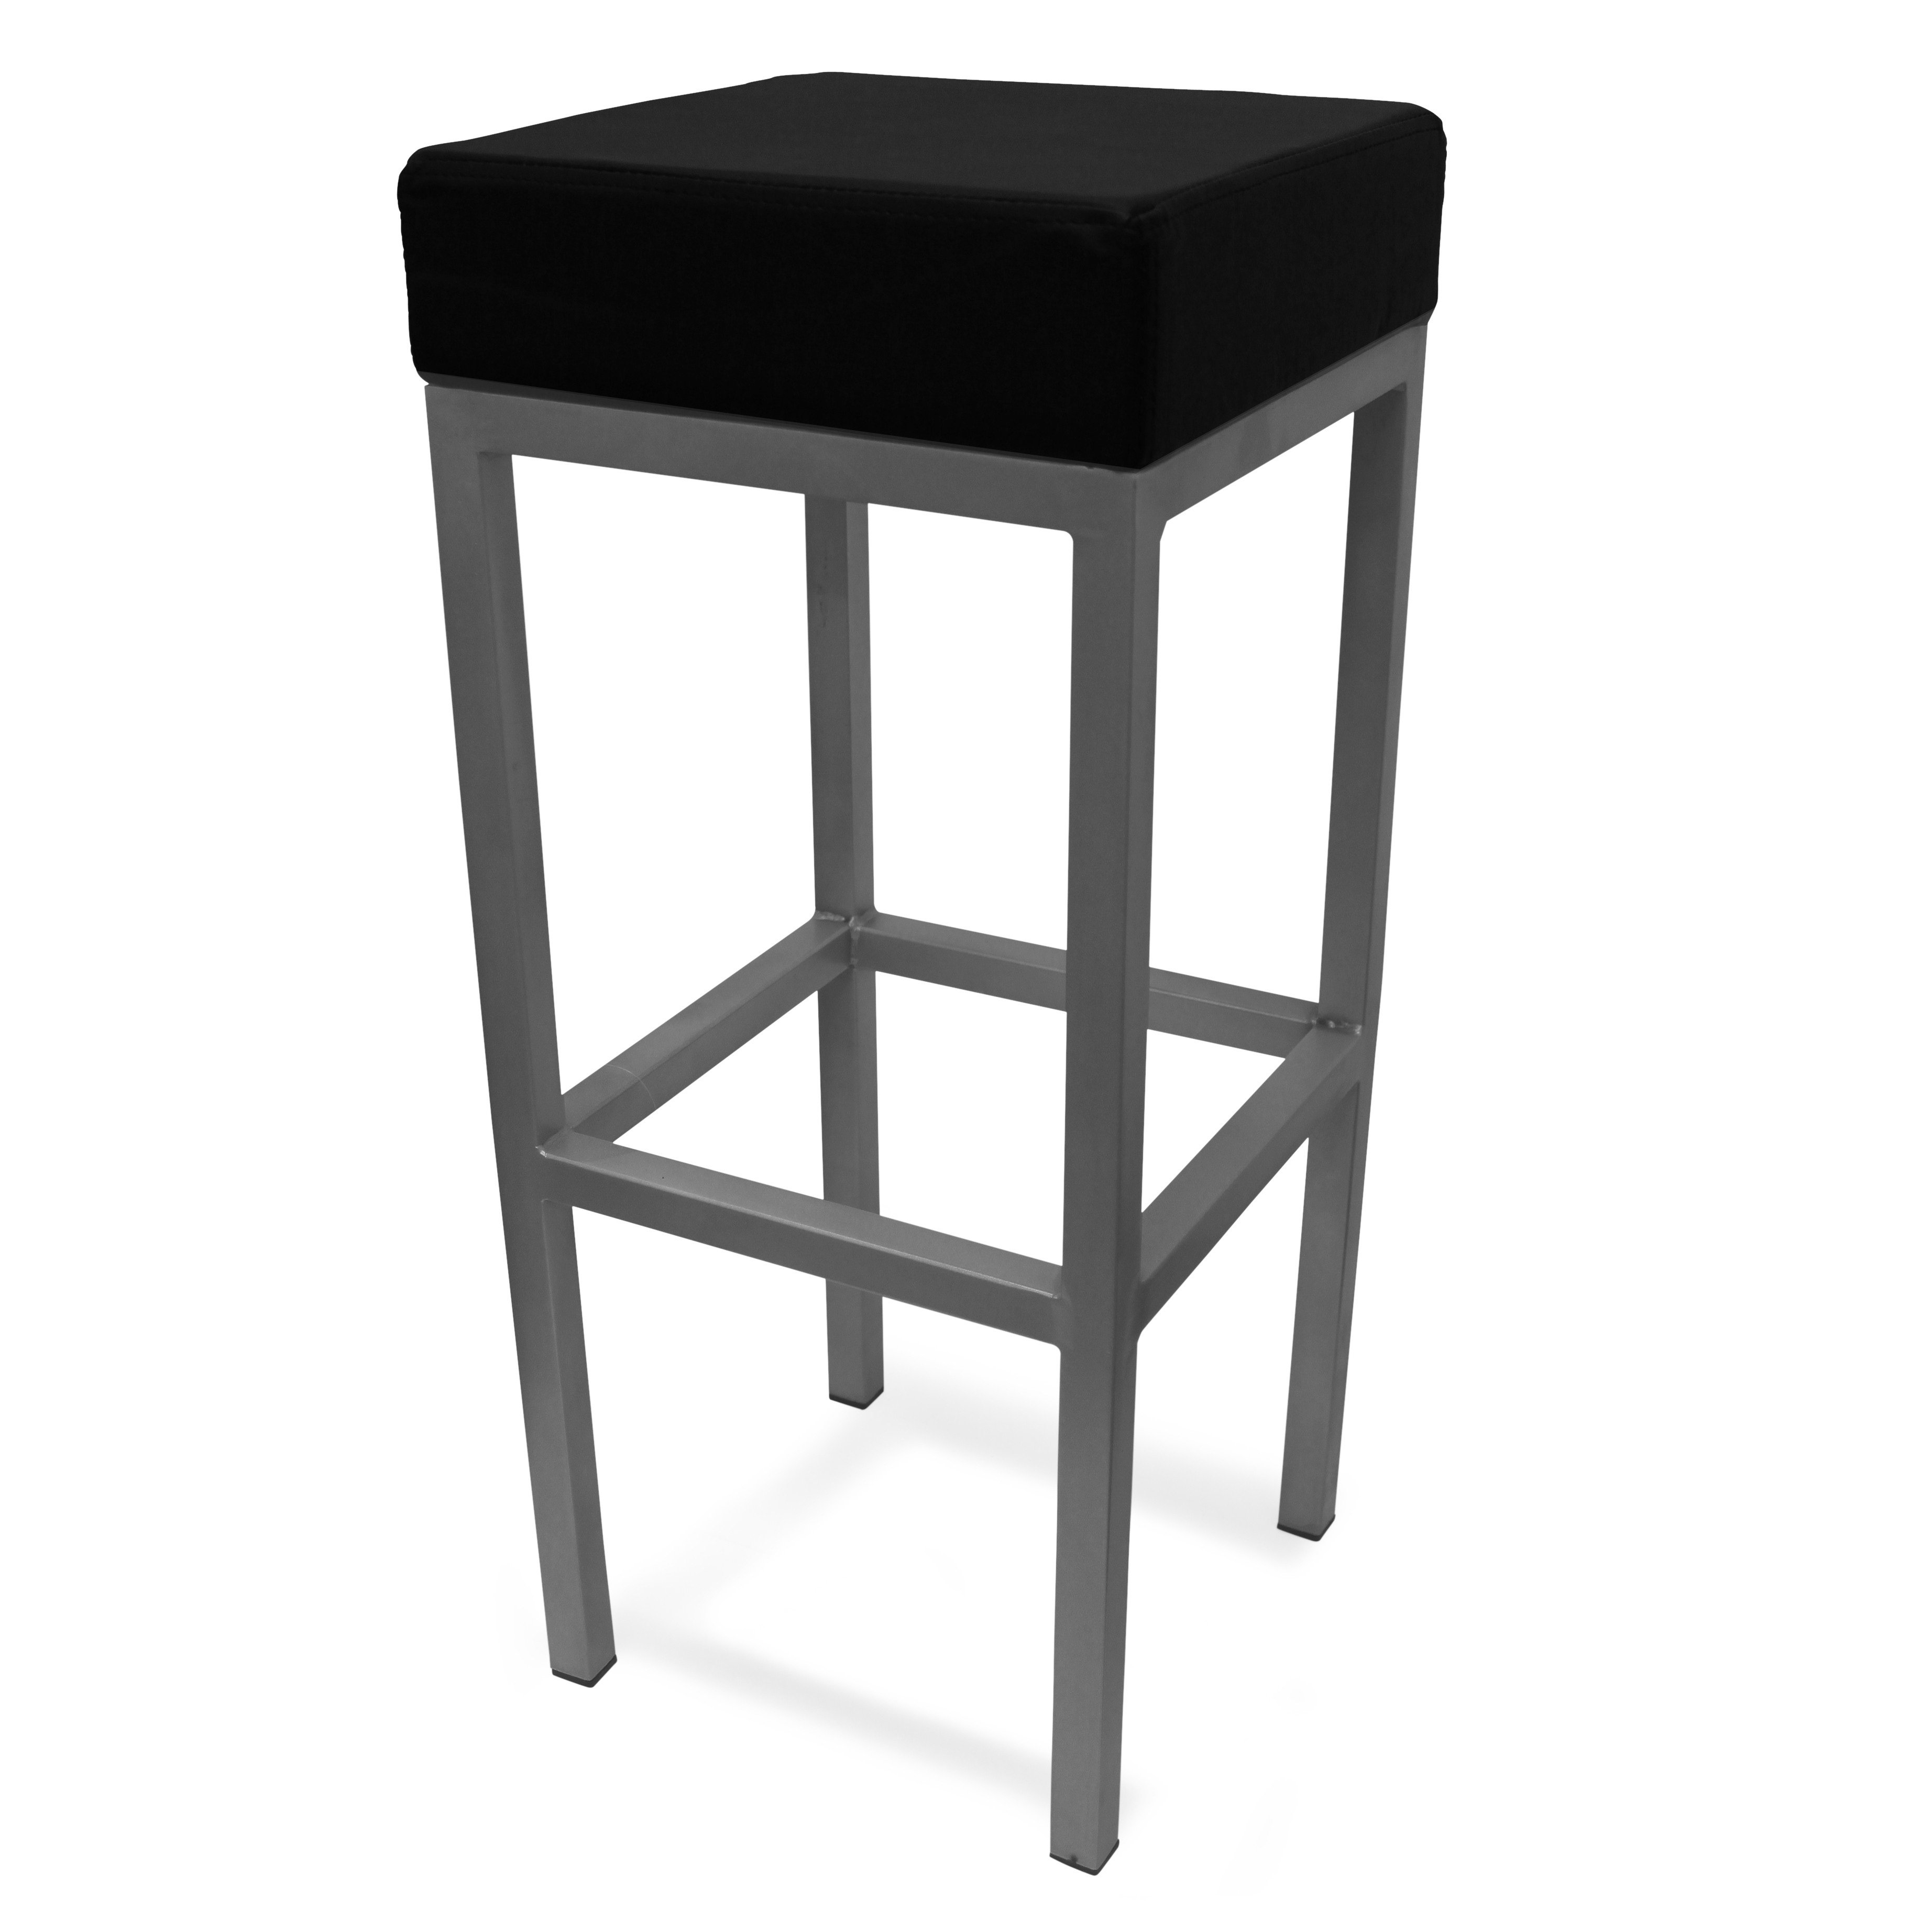 Cube Bar Stool Black Size 730mm X 315mm